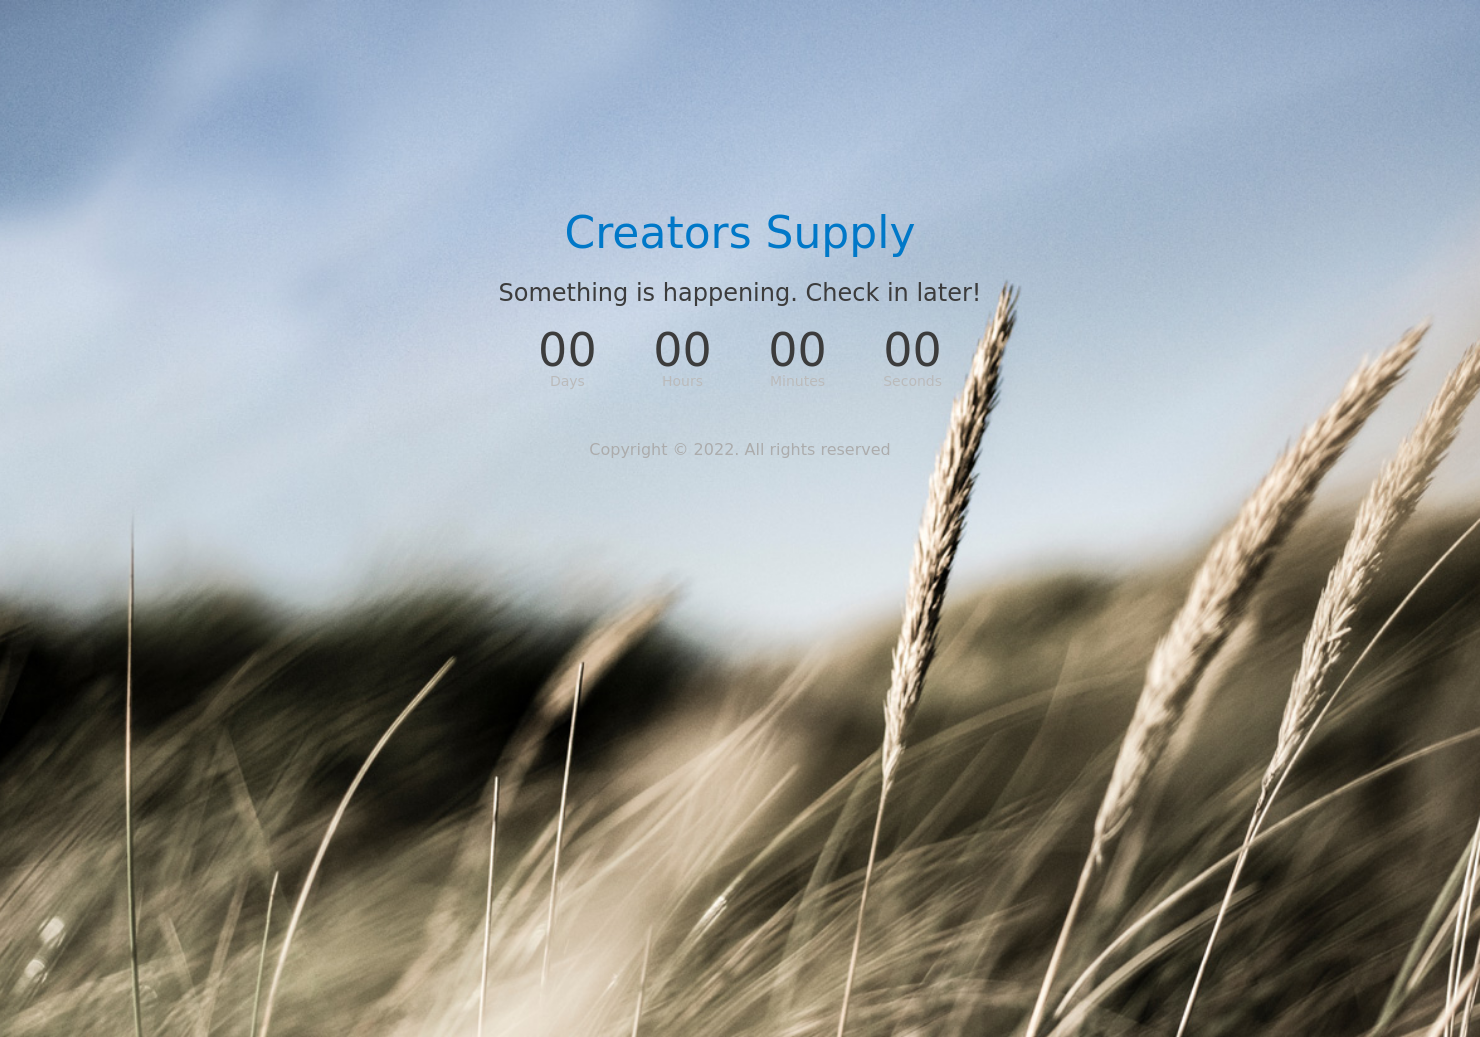 Creators Supply Newsletter